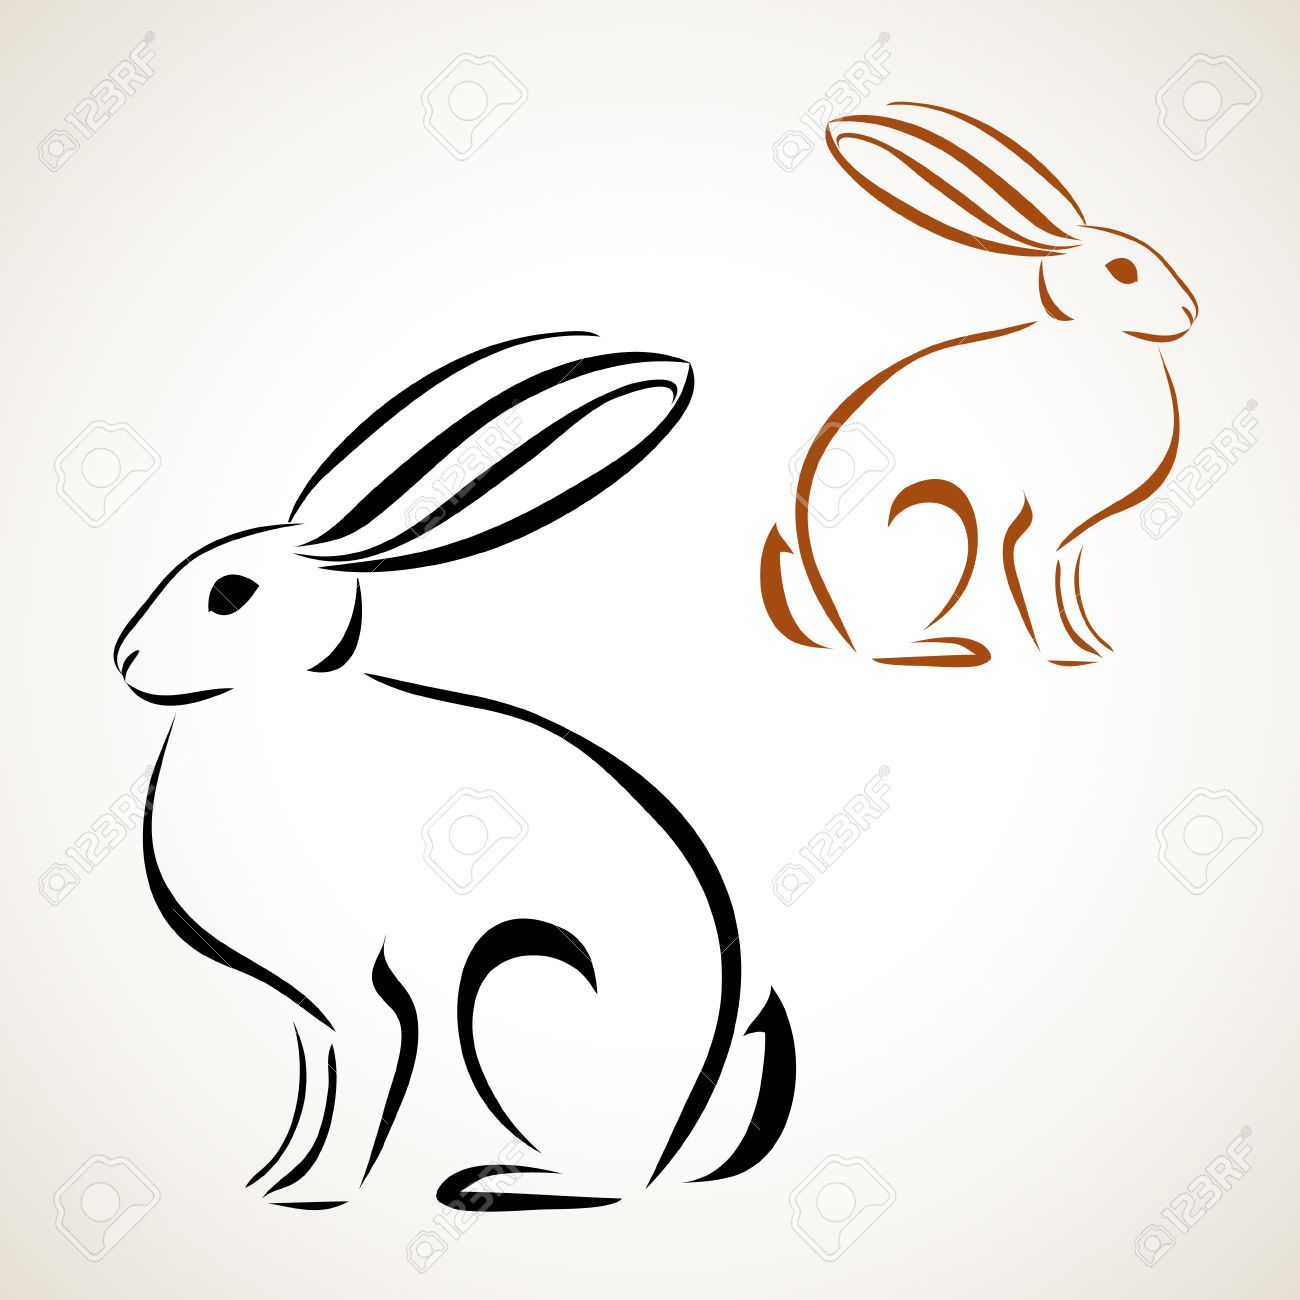 small resolution of easter card with rabbit outline royalty free cliparts vectors